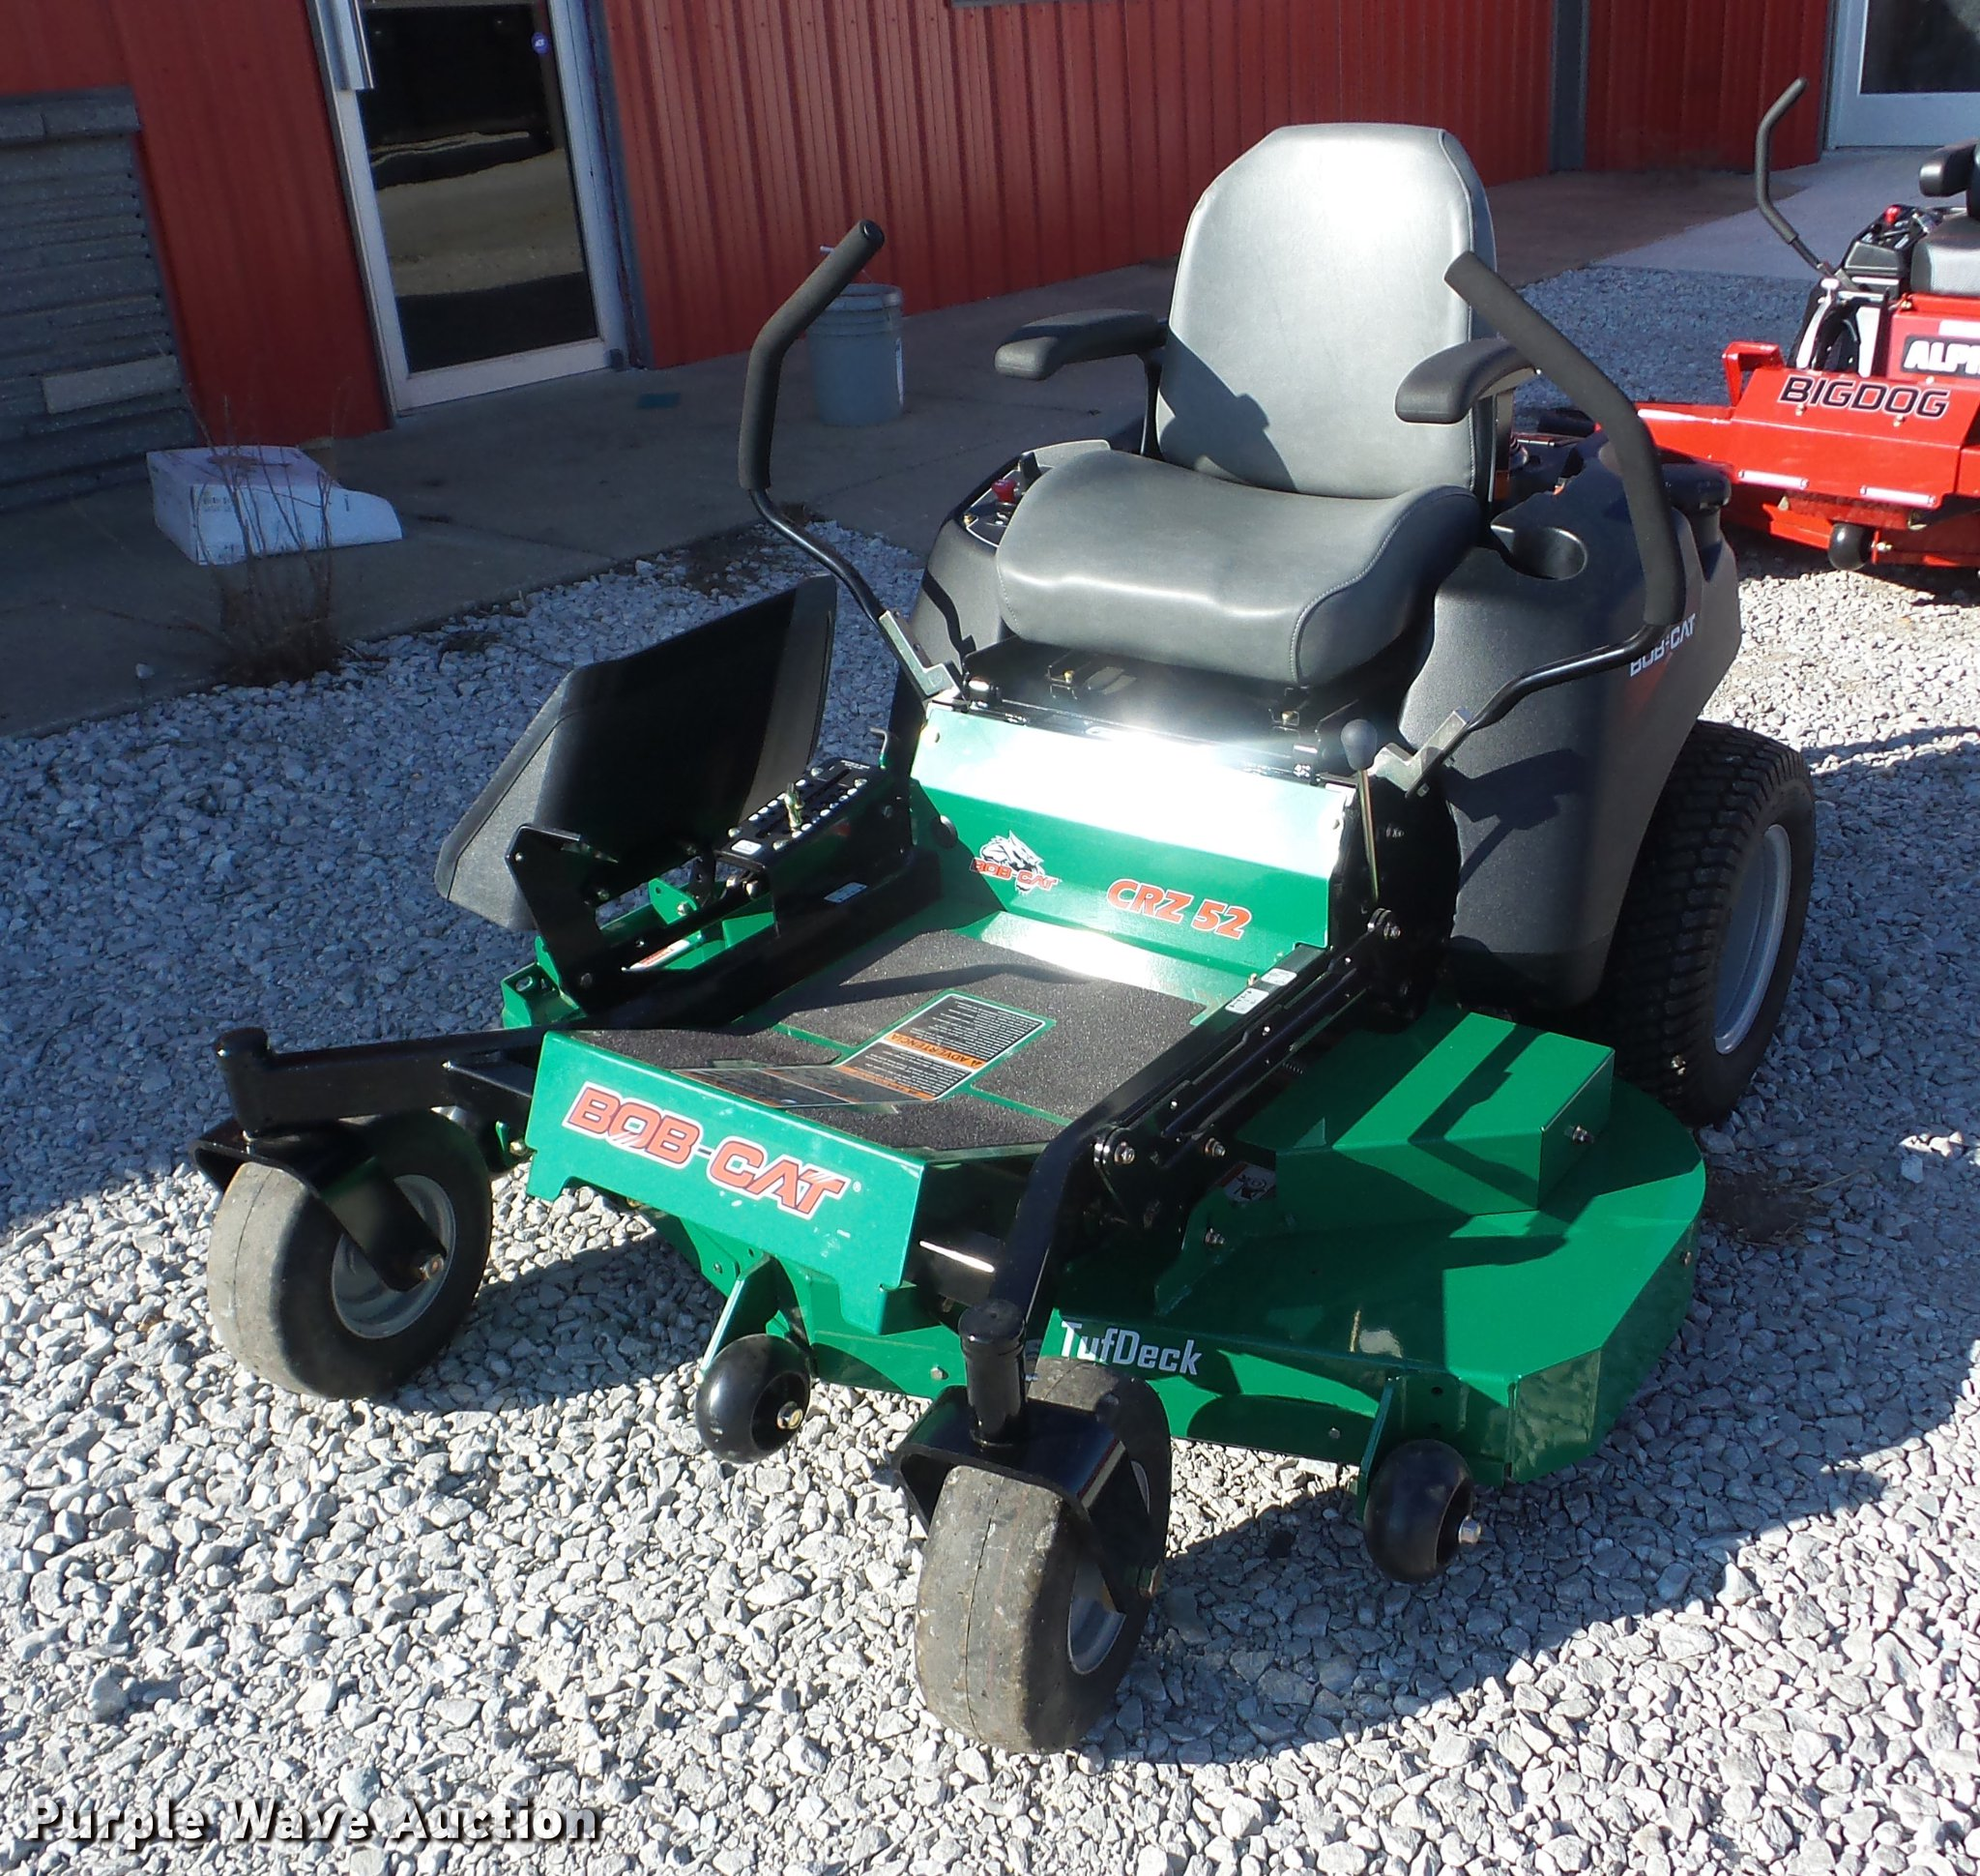 2017 Bobcat CRZ 52 lawn mower | Item EI9752 | SOLD! February